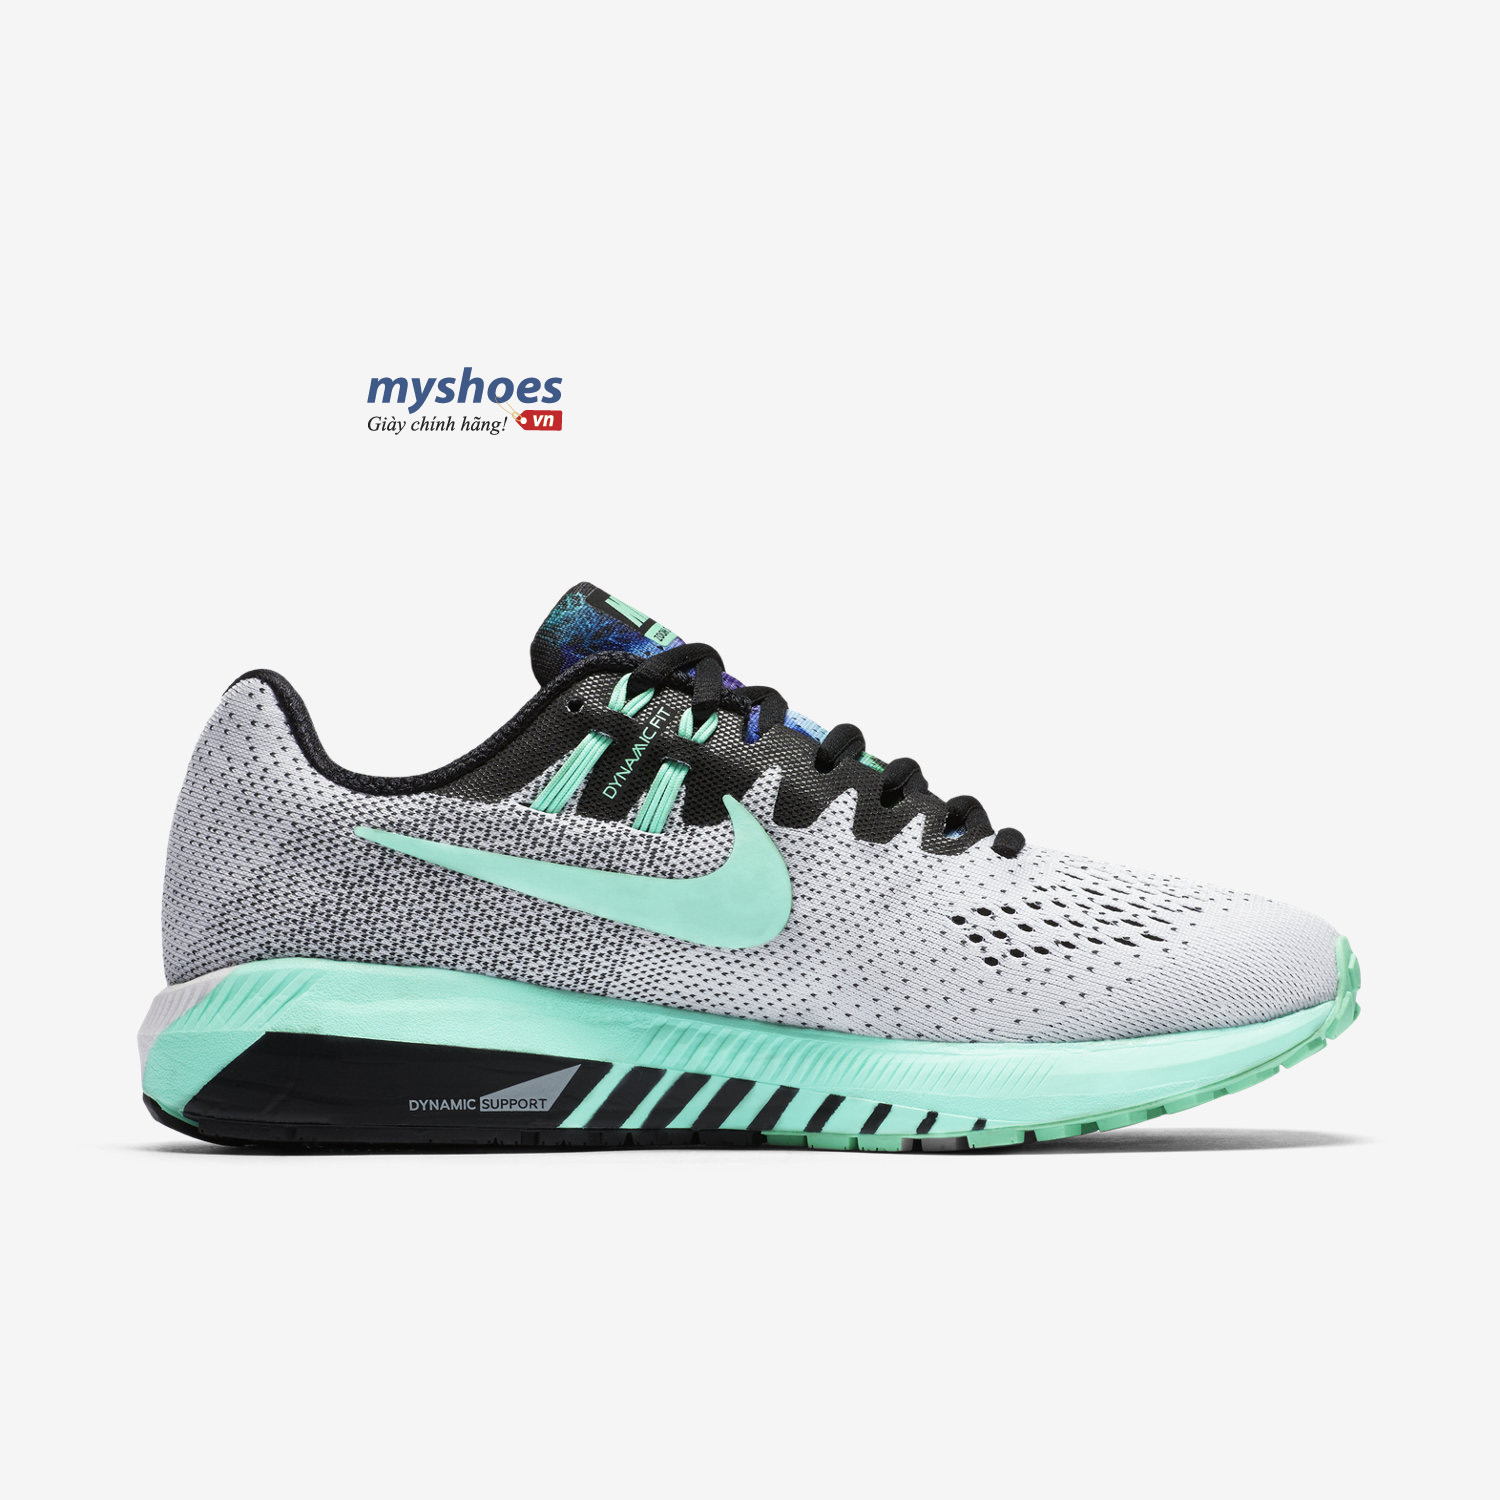 giày nike air zoom structure 20 nữ trắng xanh